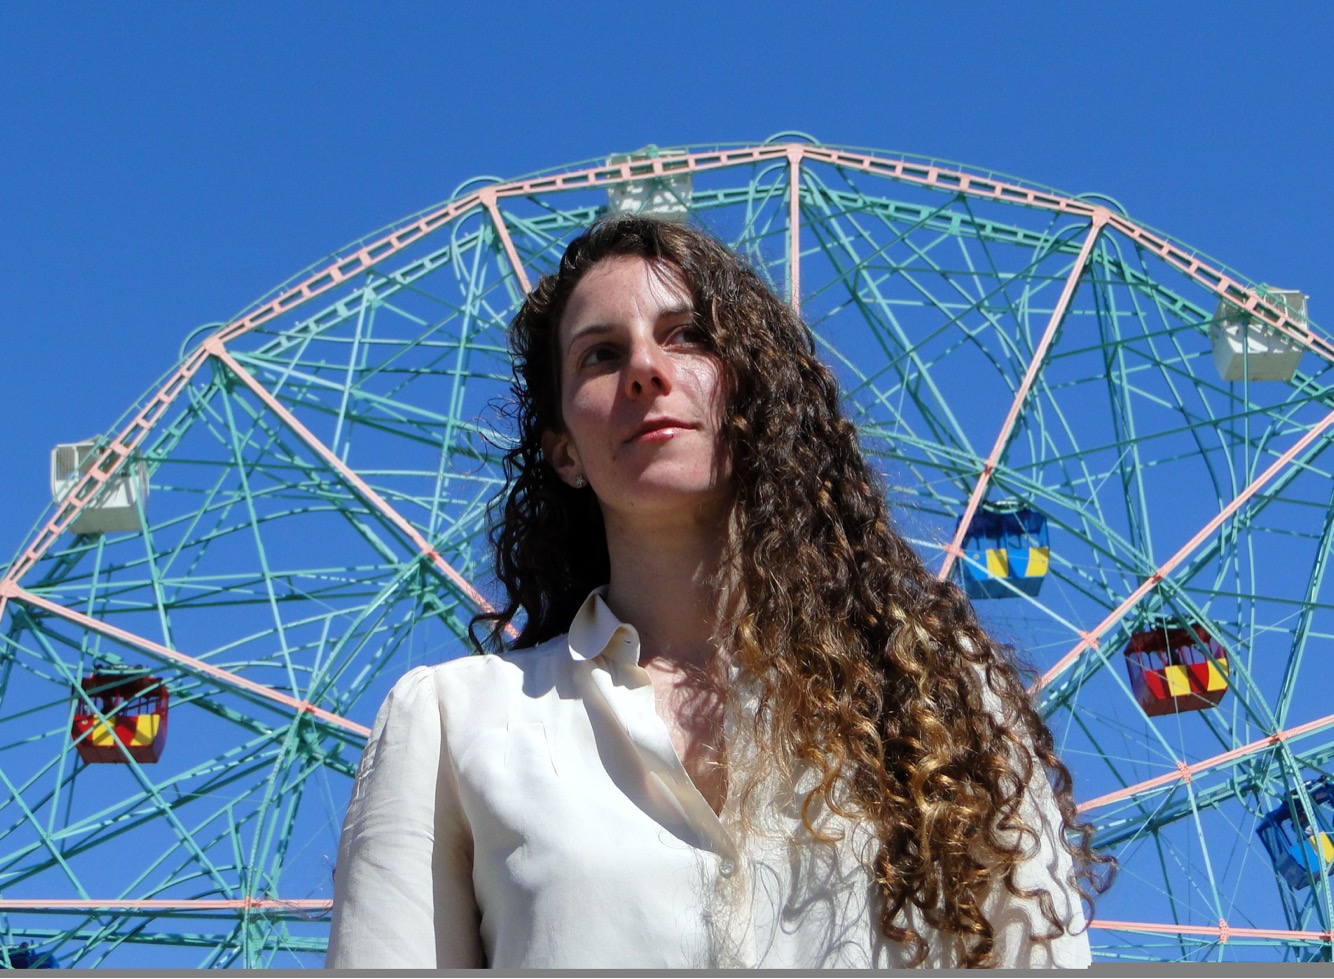 An interview with Amanda Deutch, the poet working to create a Coney Island-themed literary arts non-profit